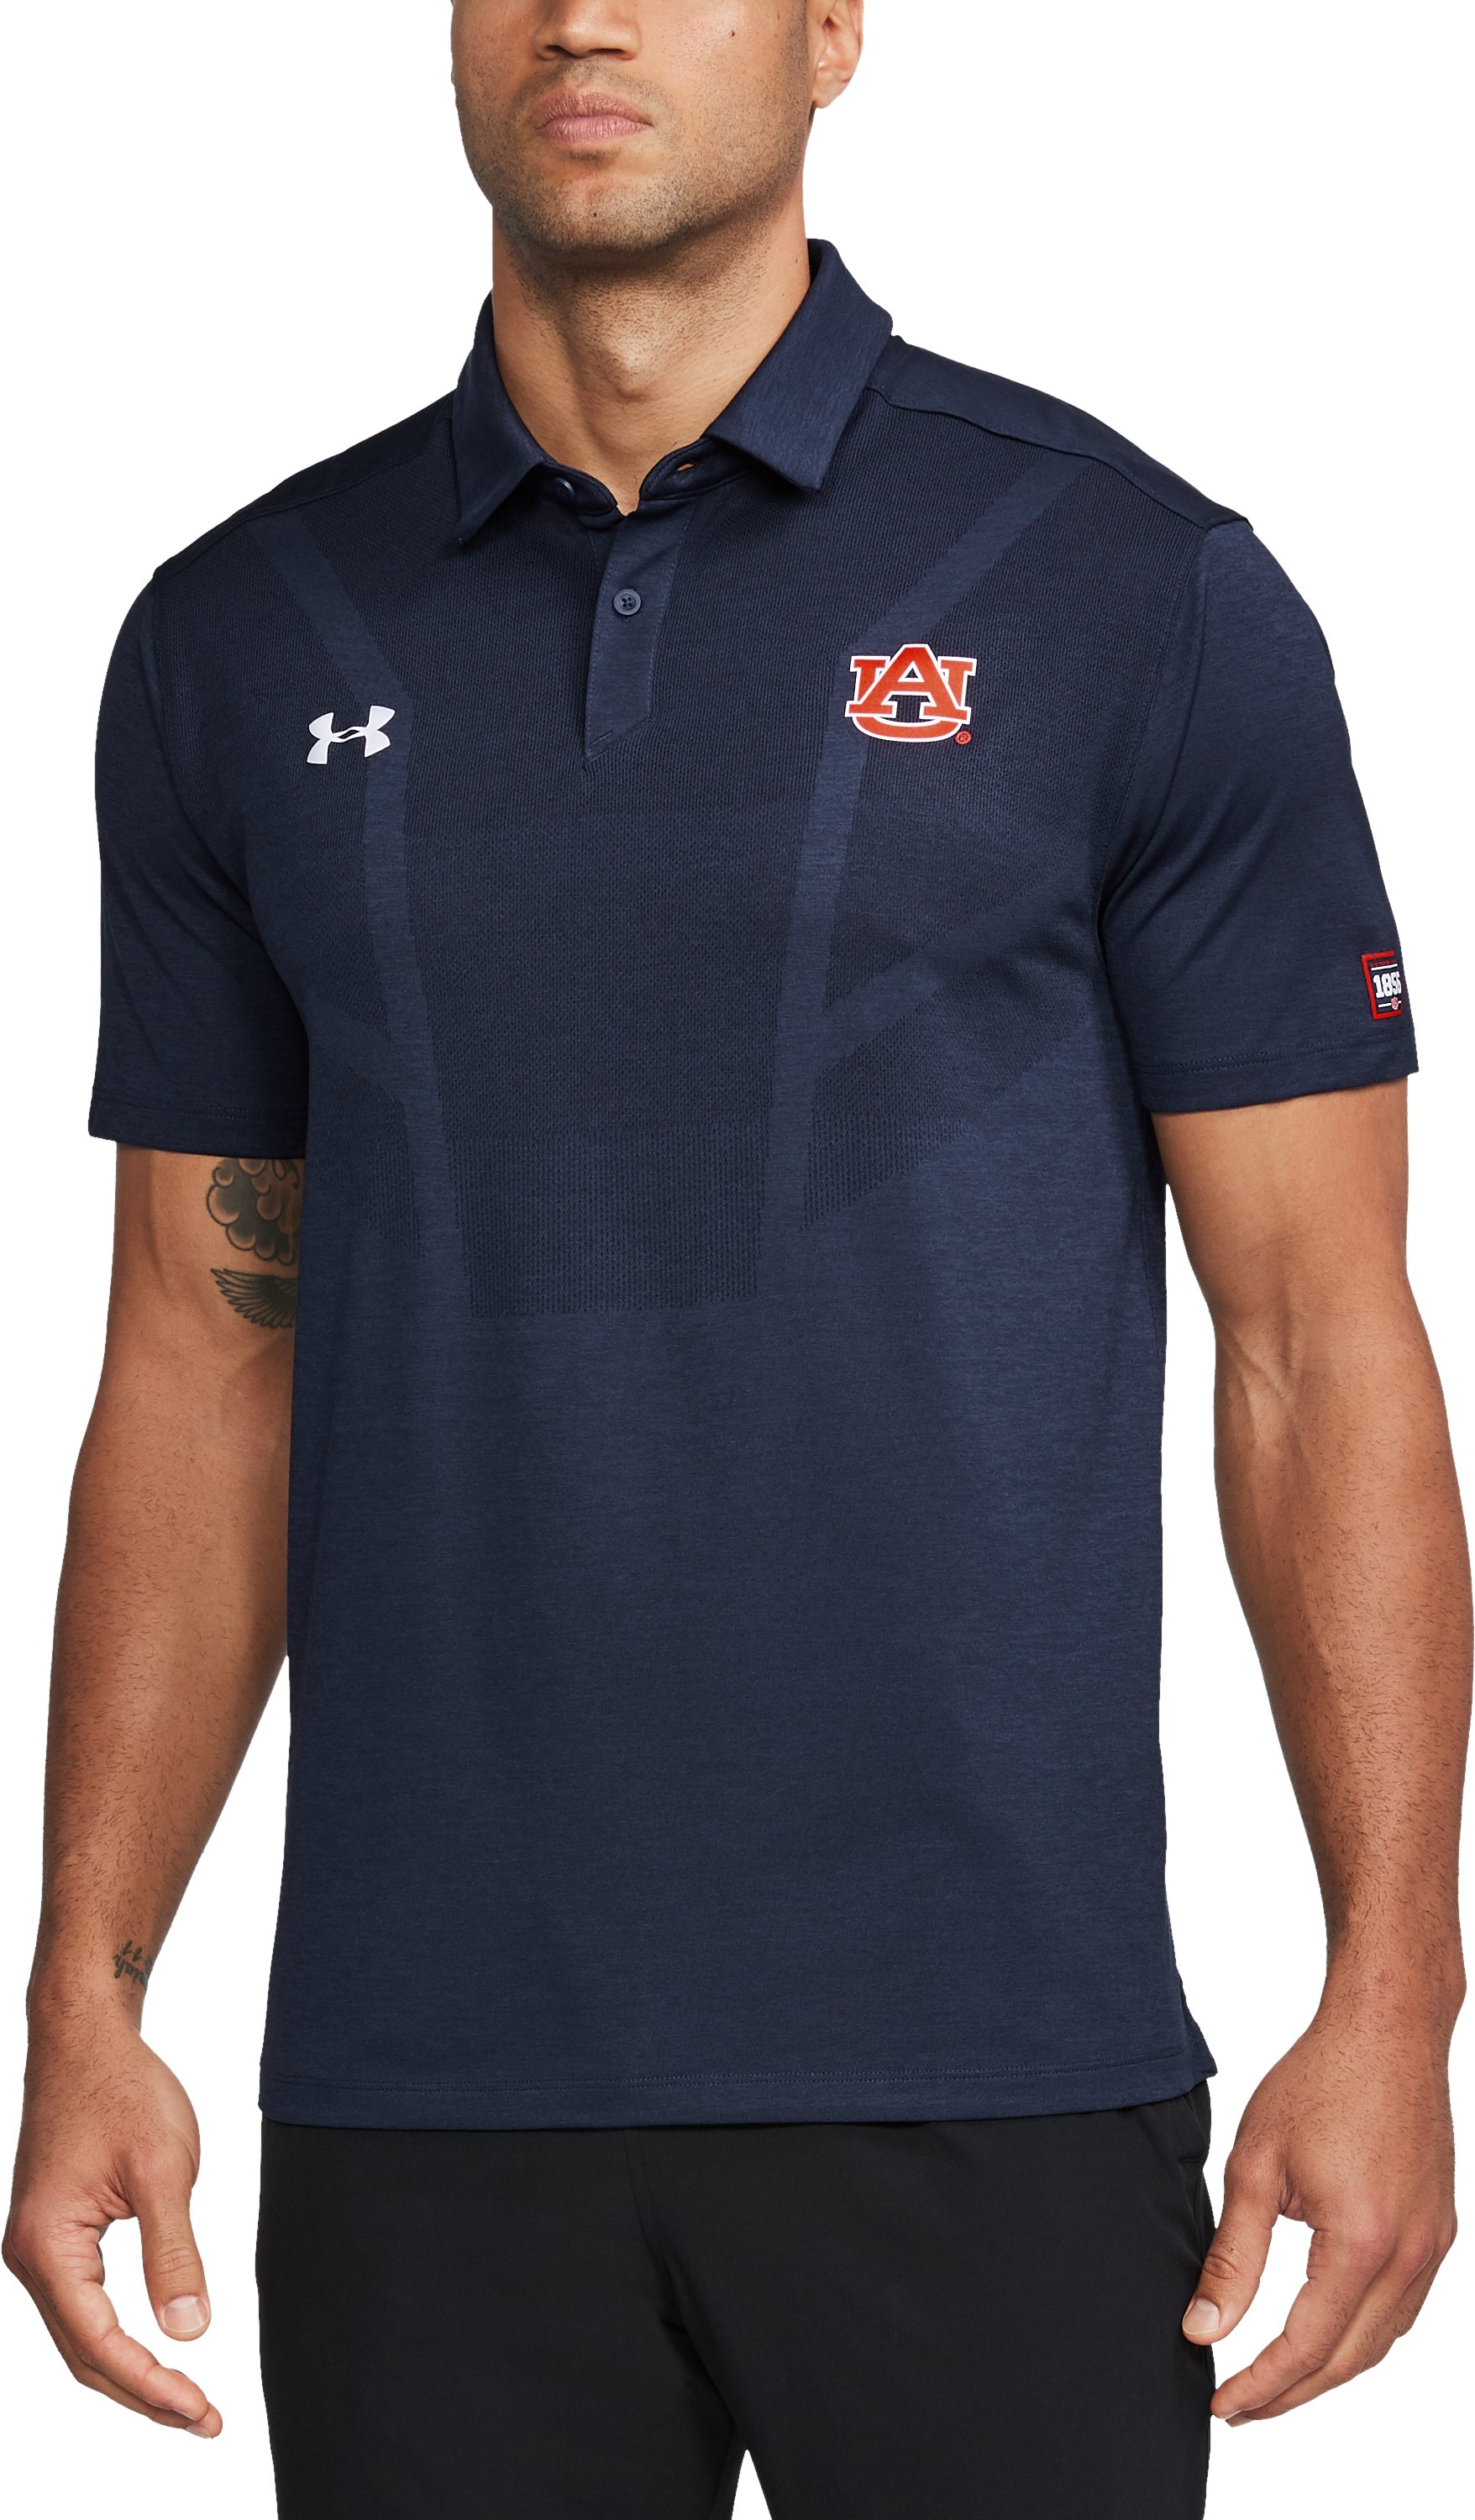 Men's Auburn UA Tour Polo, Midnight Navy